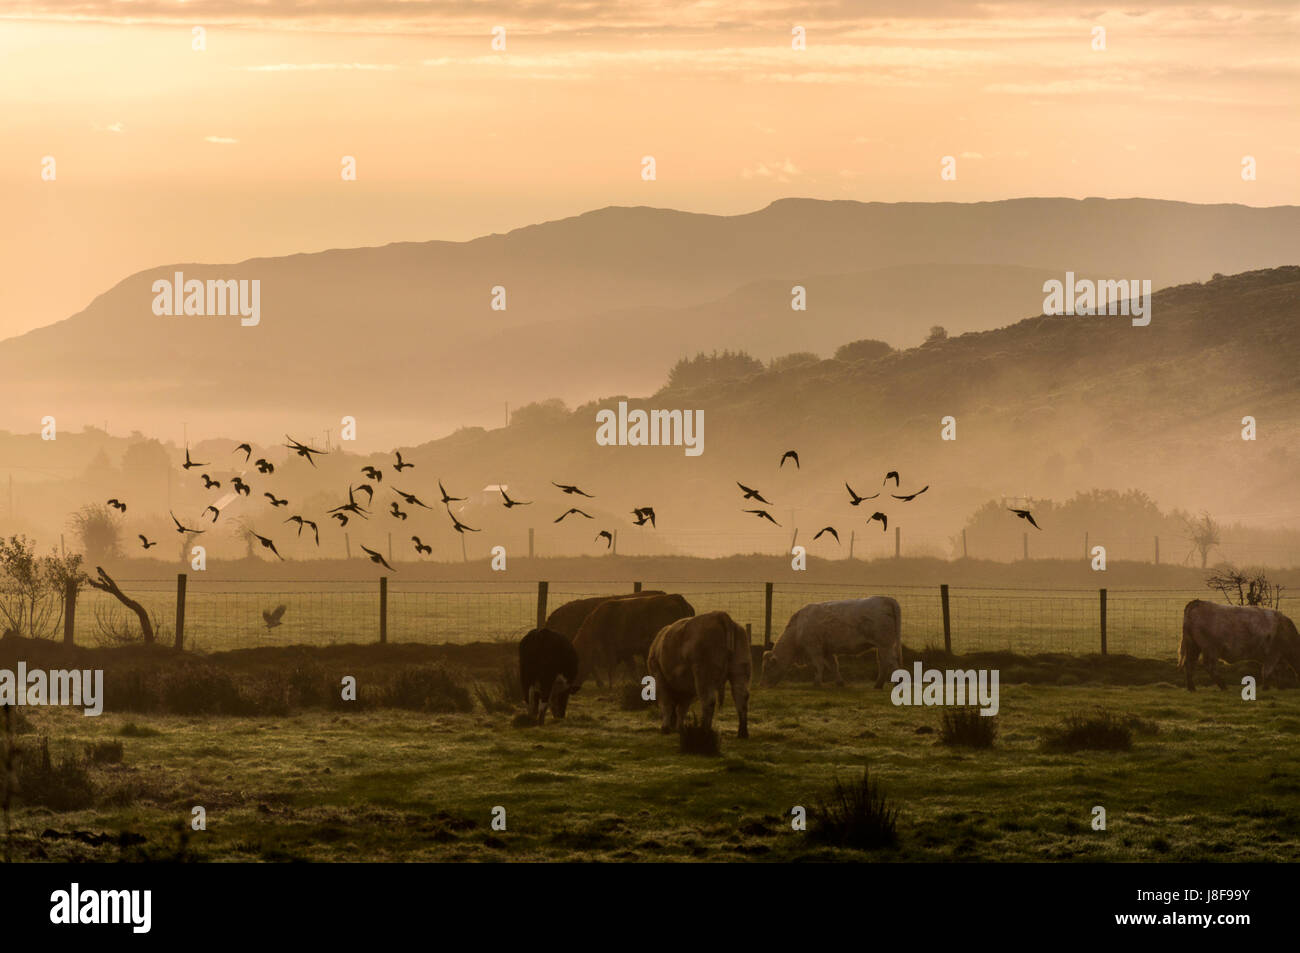 Beef cattle livestock on a farm in County Donegal, Ireland at dawn sunrise morning. - Stock Image